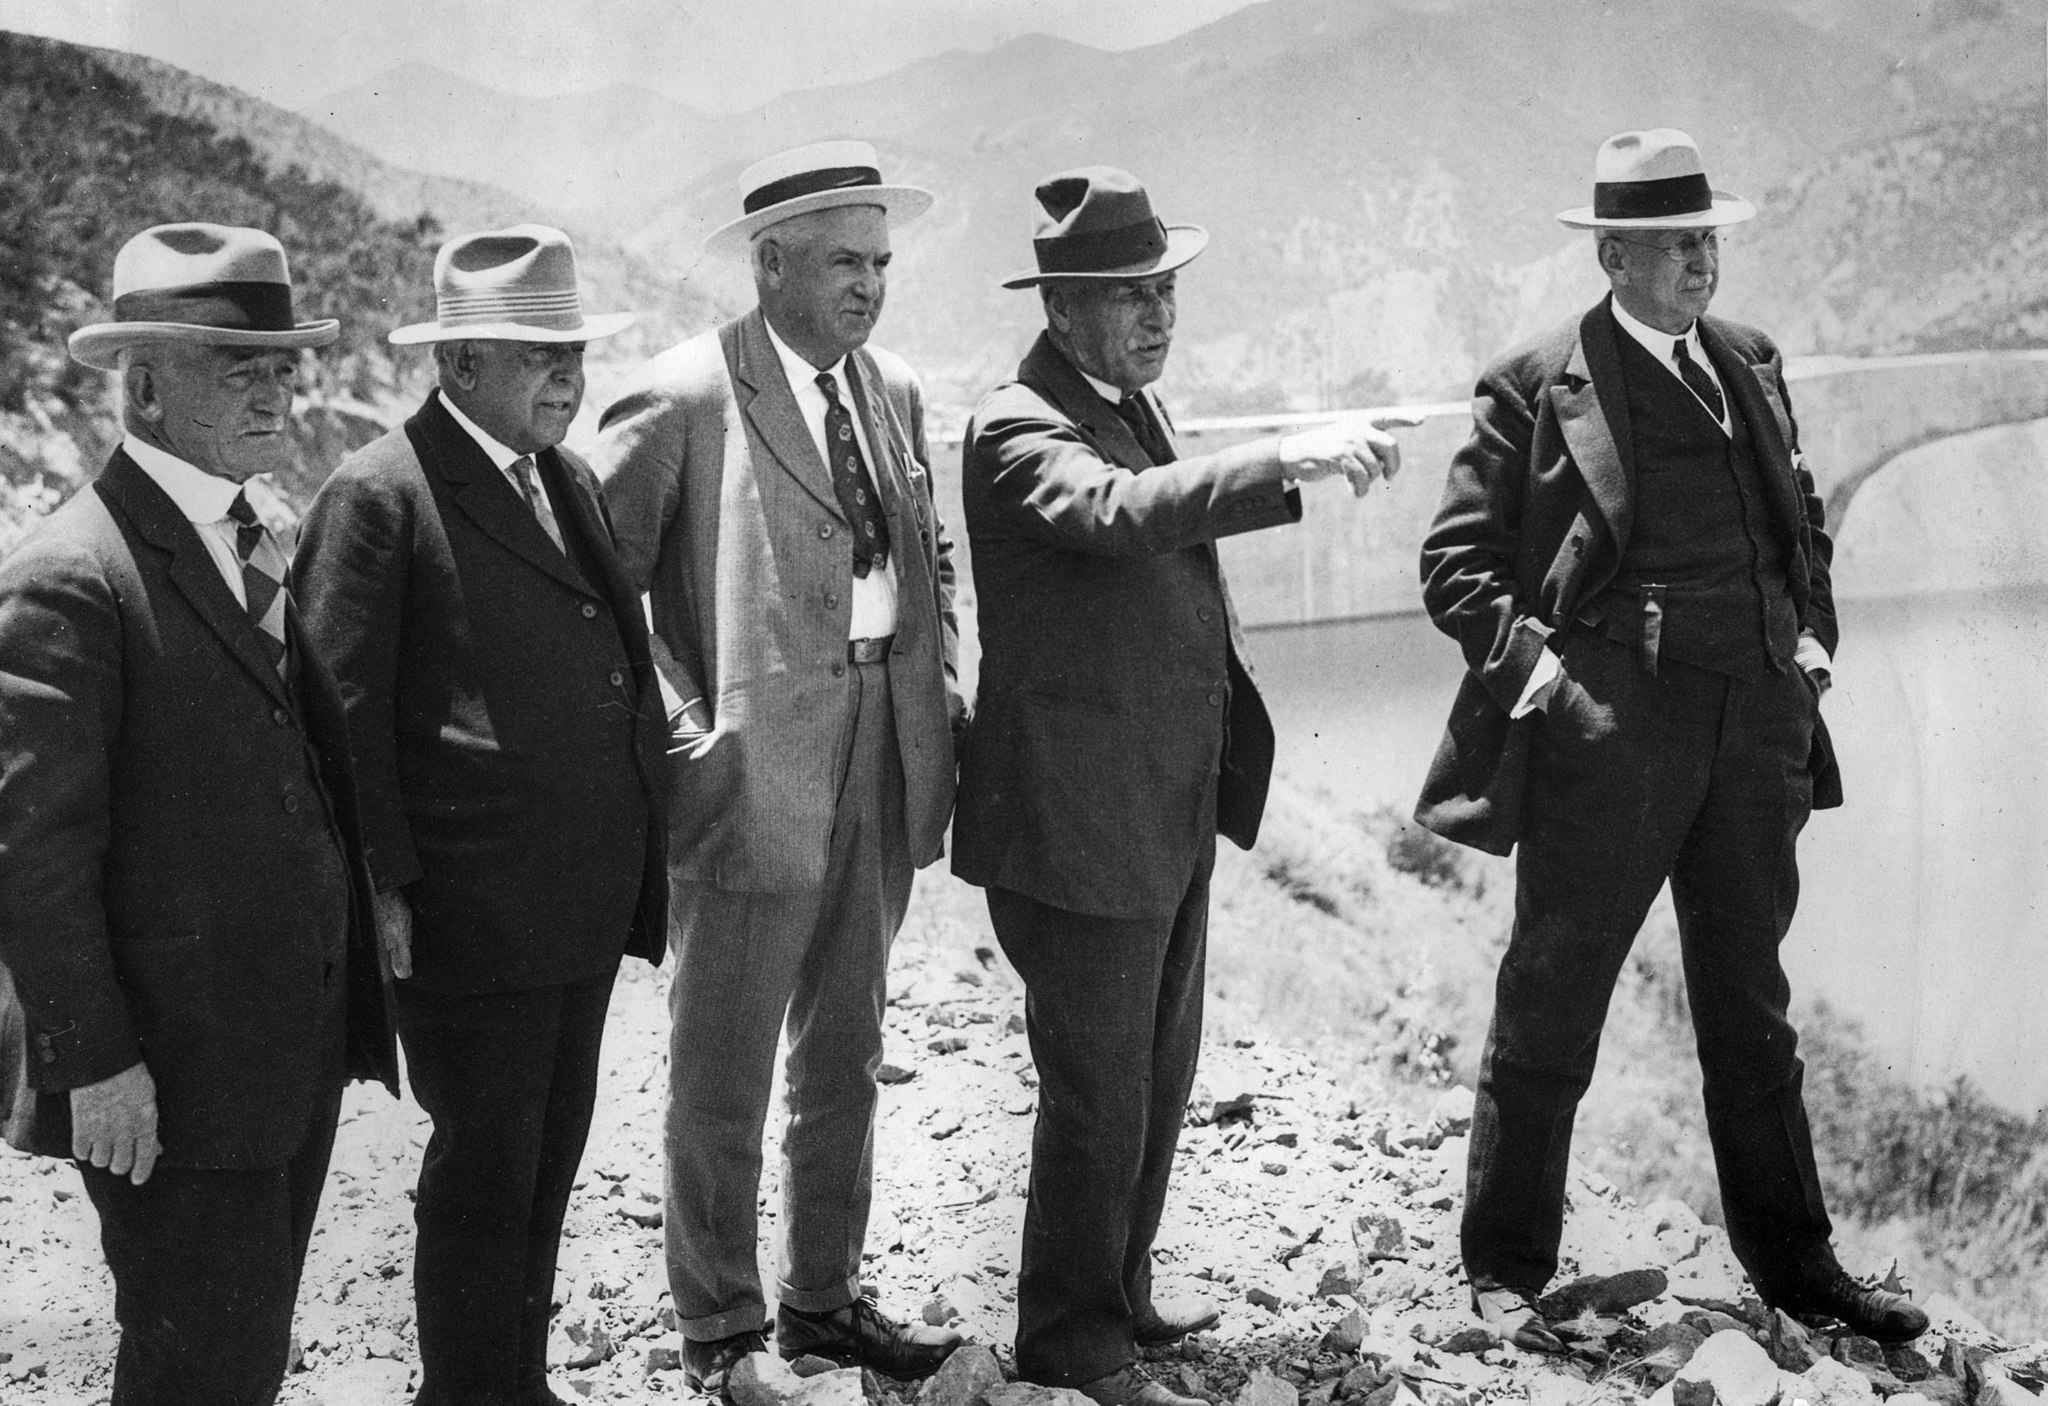 Circa 1926 photo of officials at the site of the new St. Francis Dam. Dam builder William Mulholland